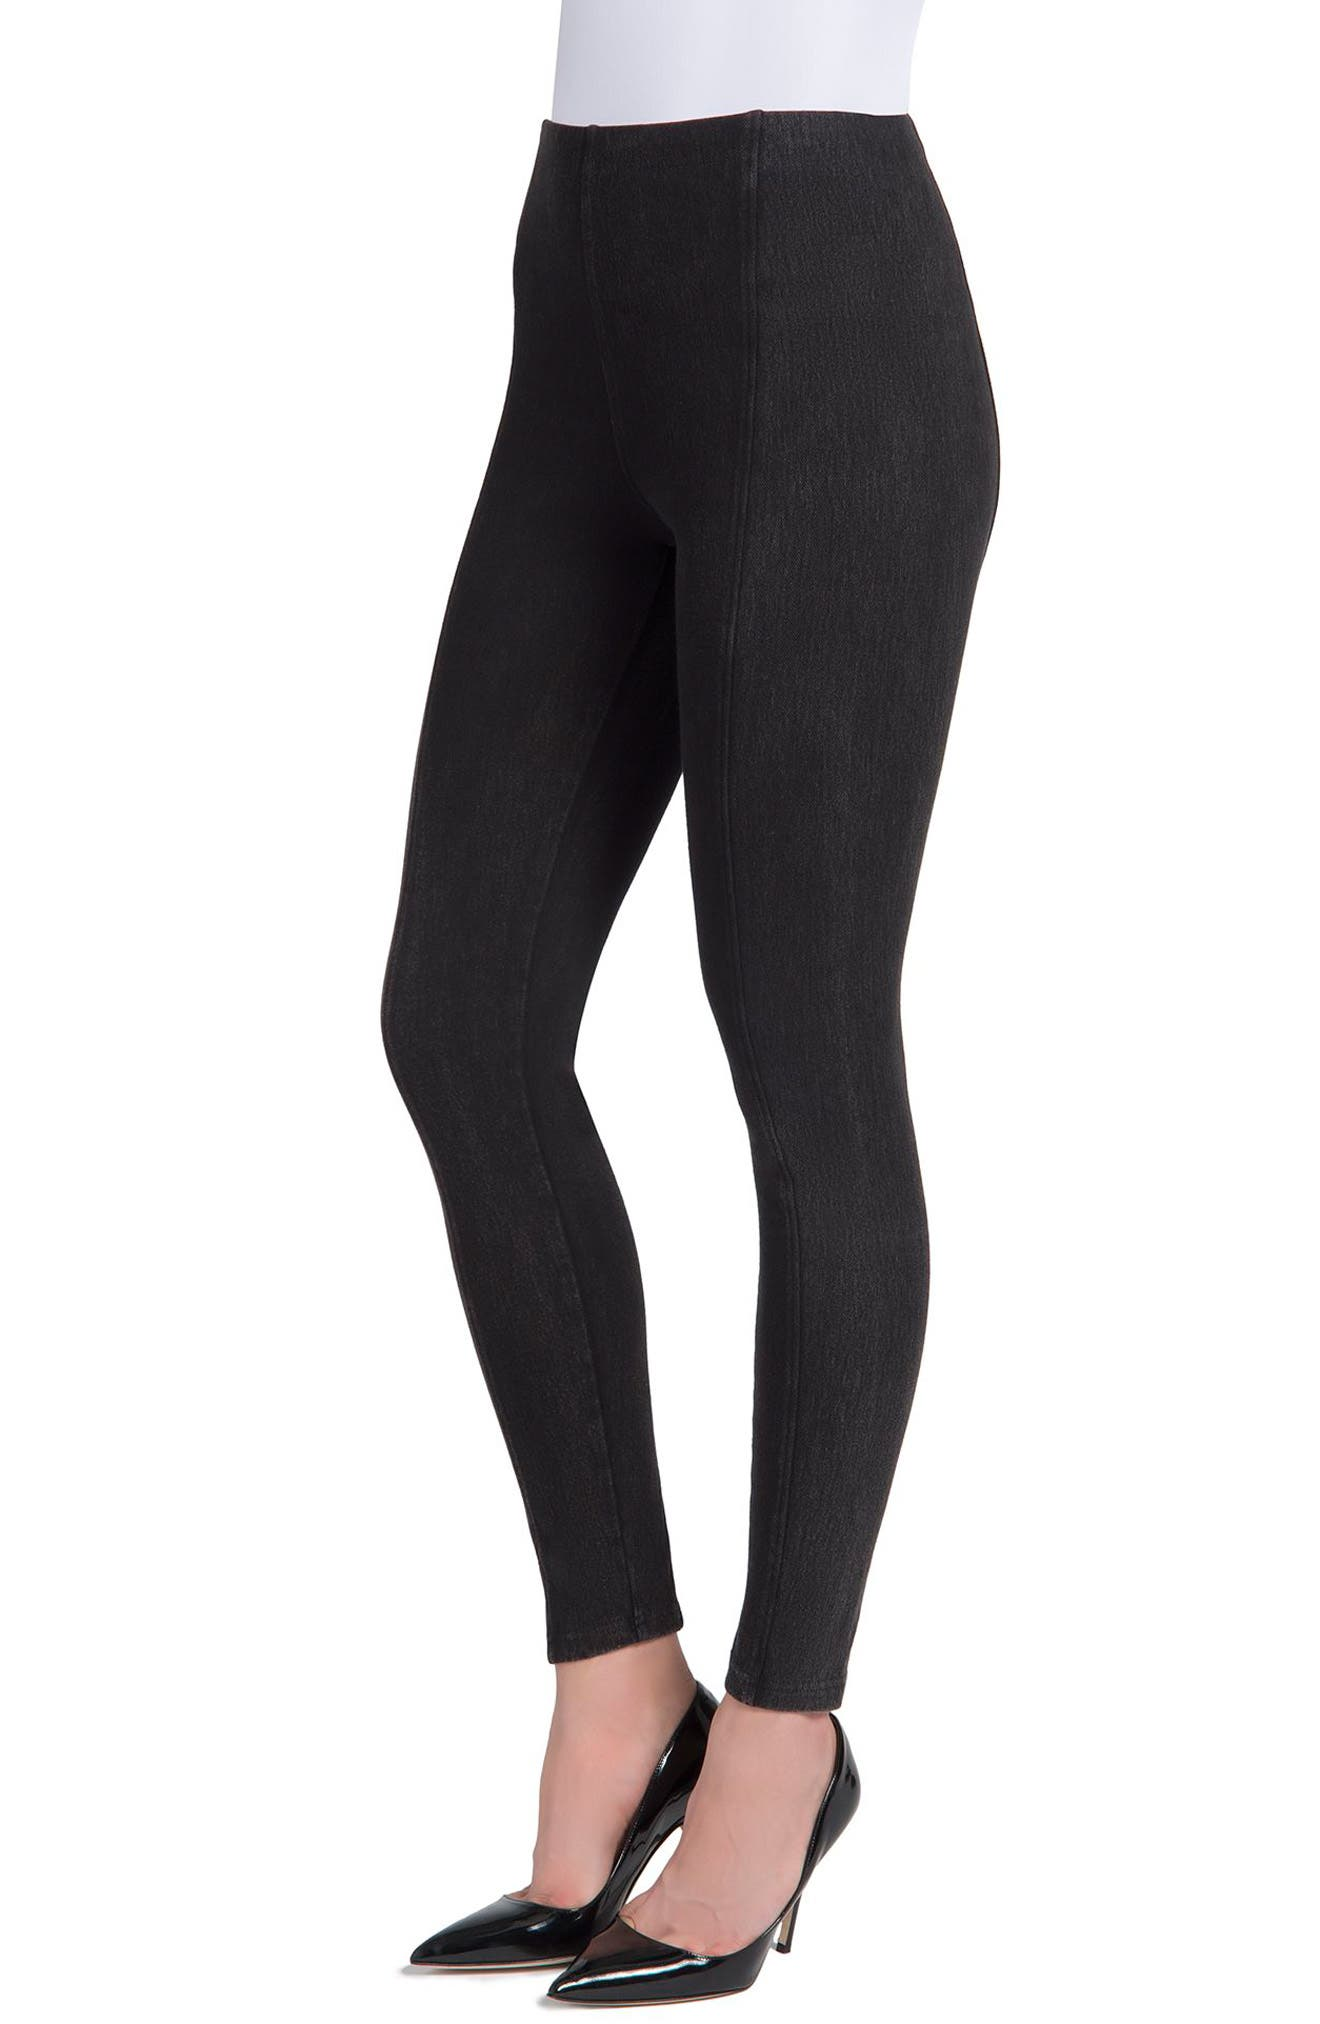 Marley Denim Leggings,                             Alternate thumbnail 5, color,